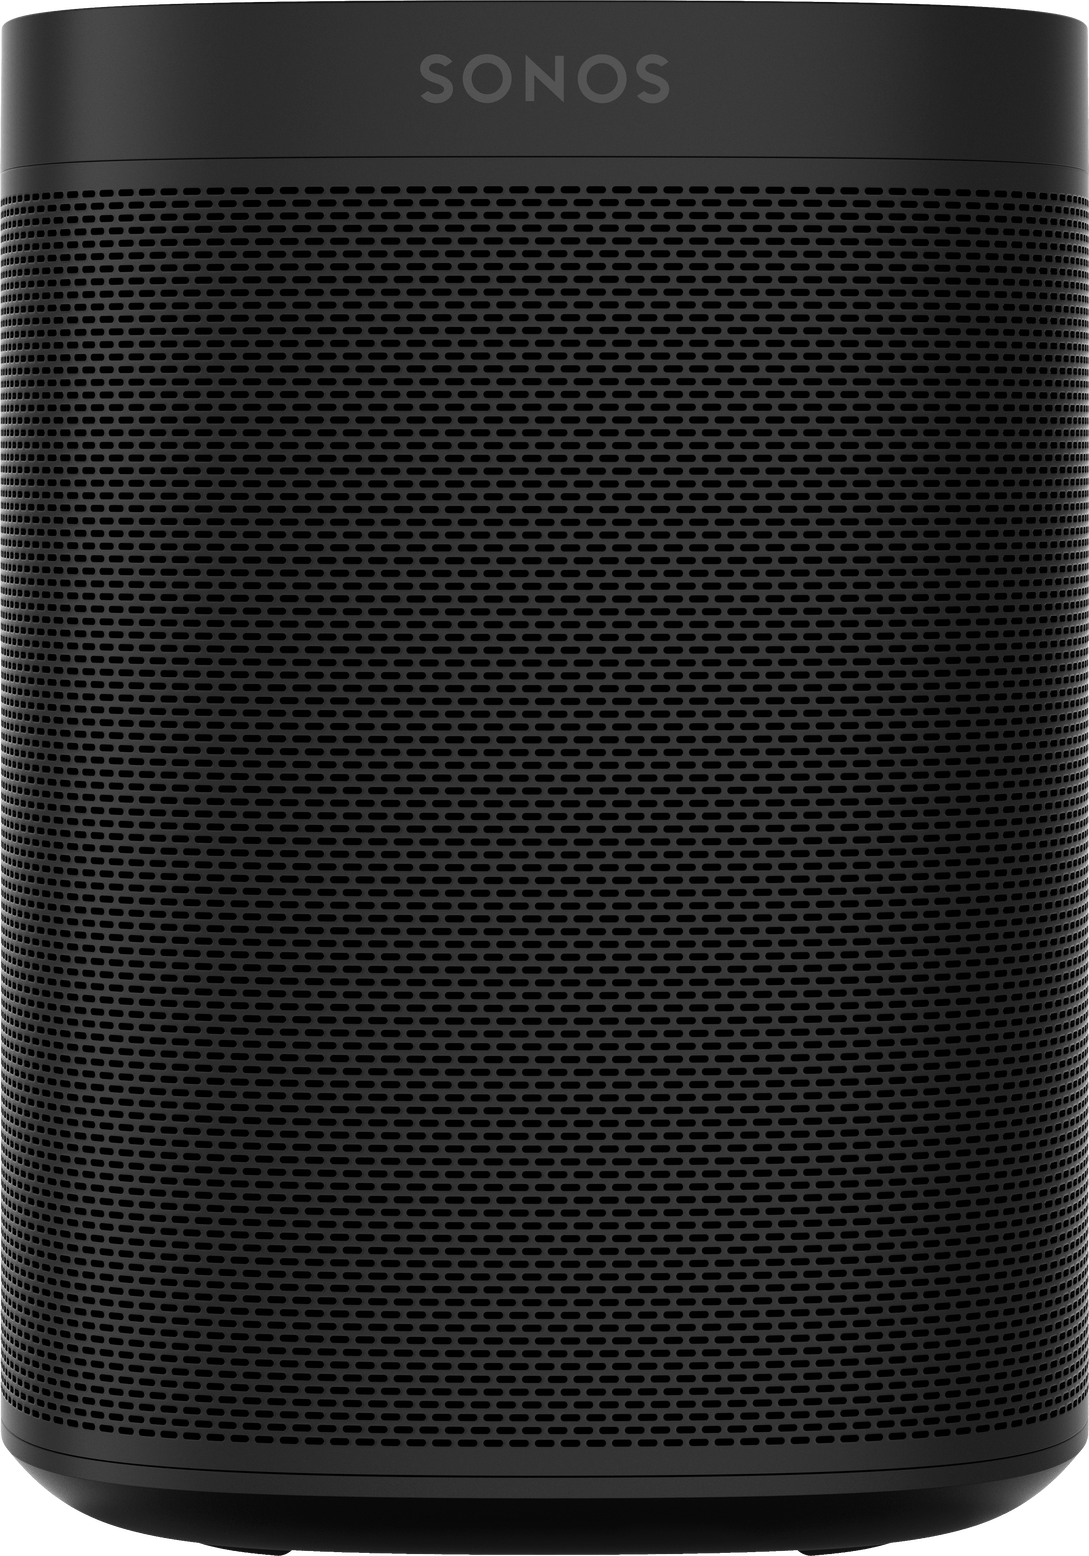 Sonos One speaker in black